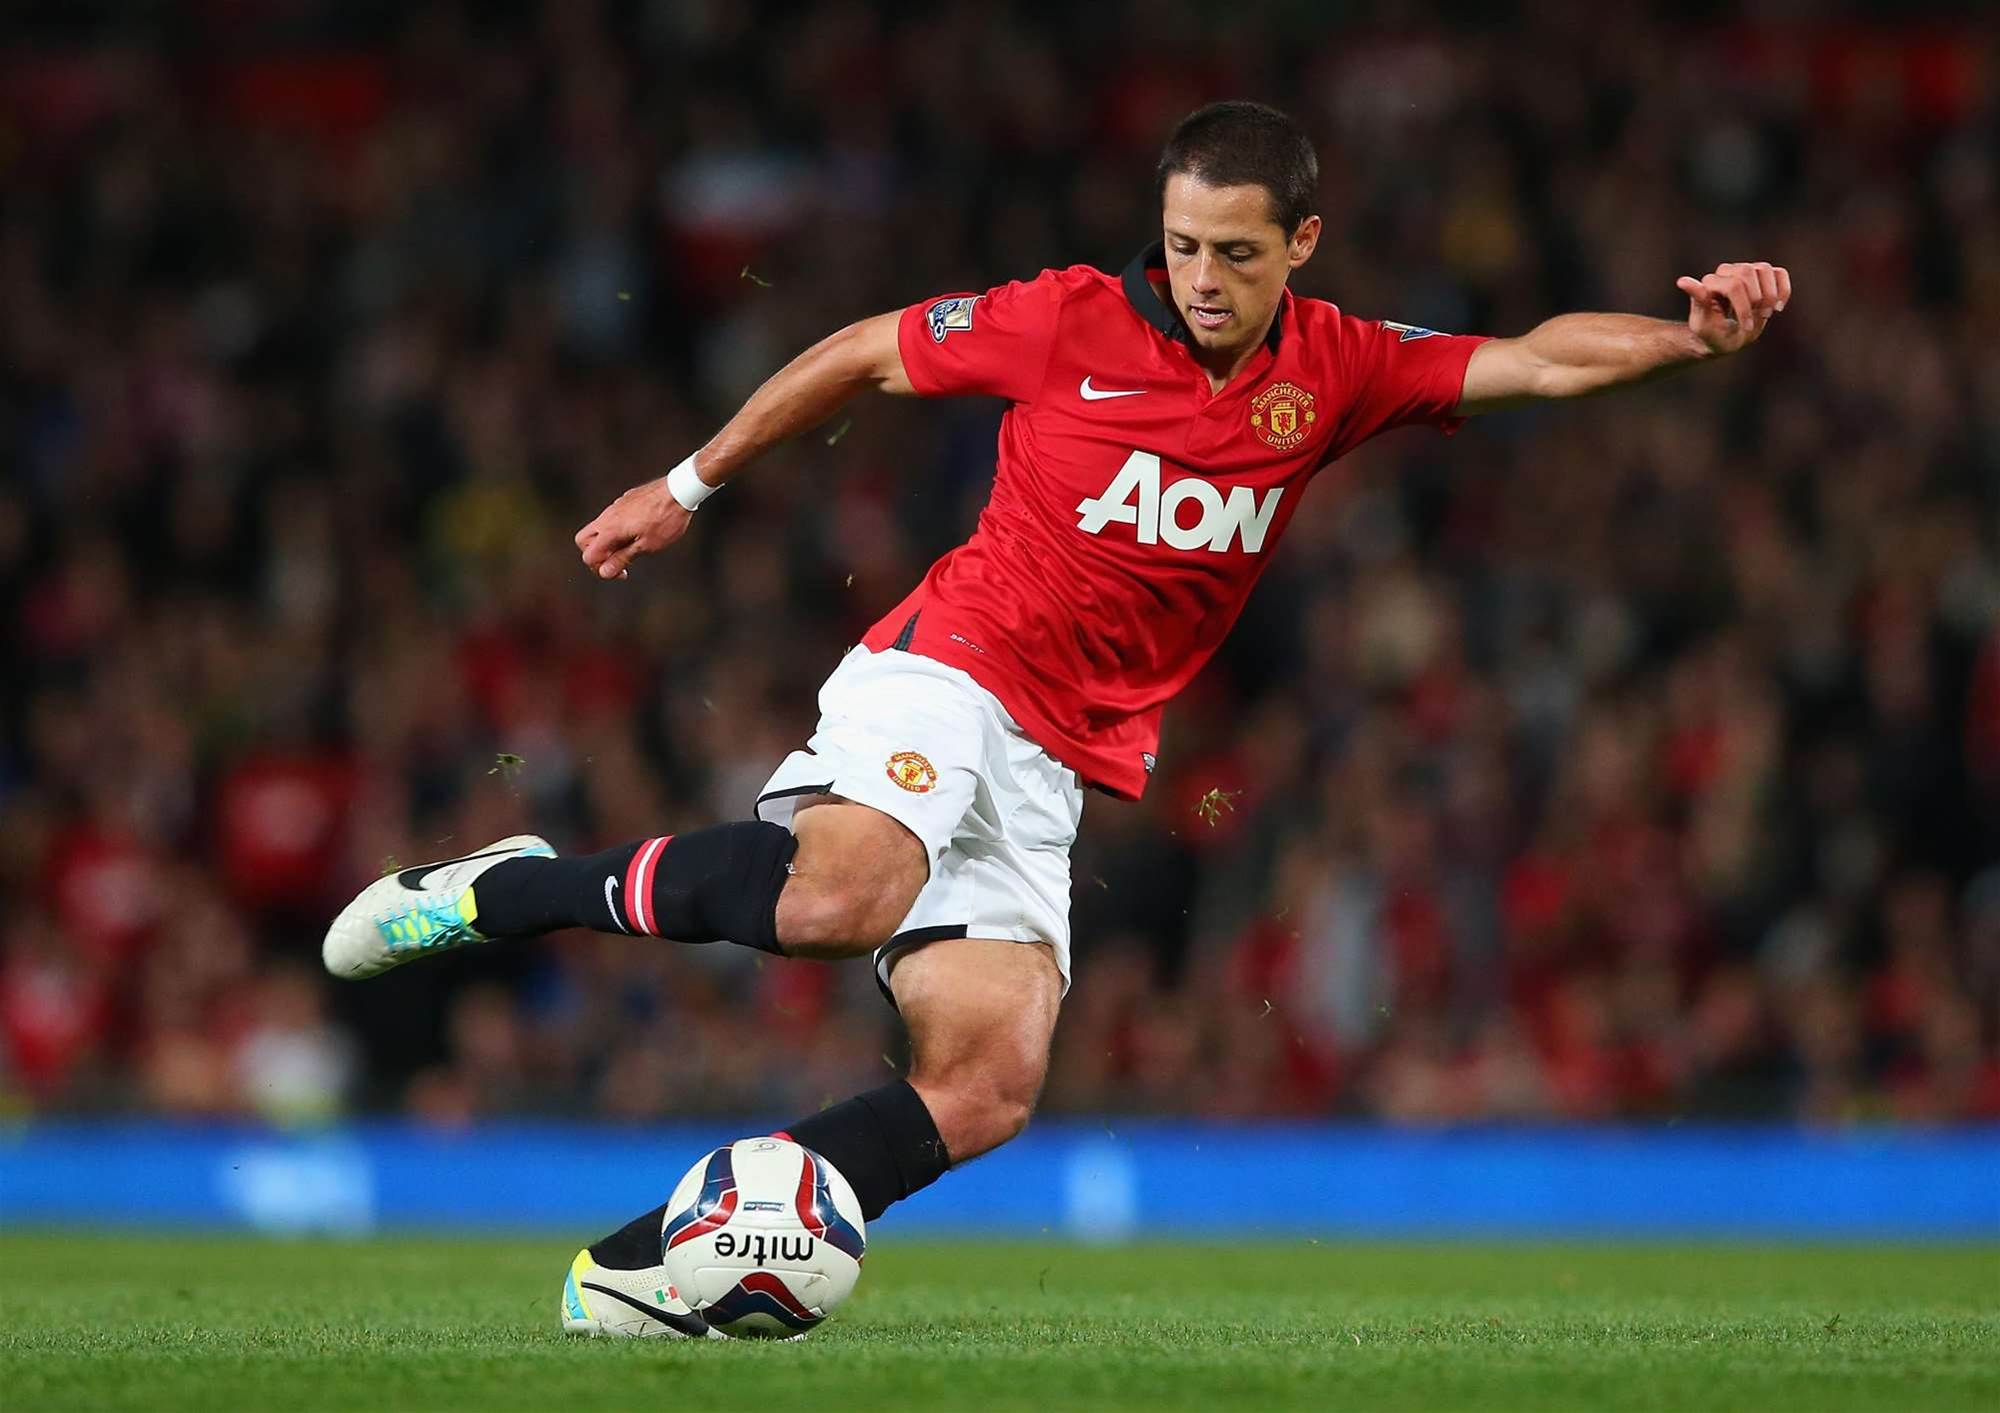 Hernandez hints at United exit if first-team hopes fade